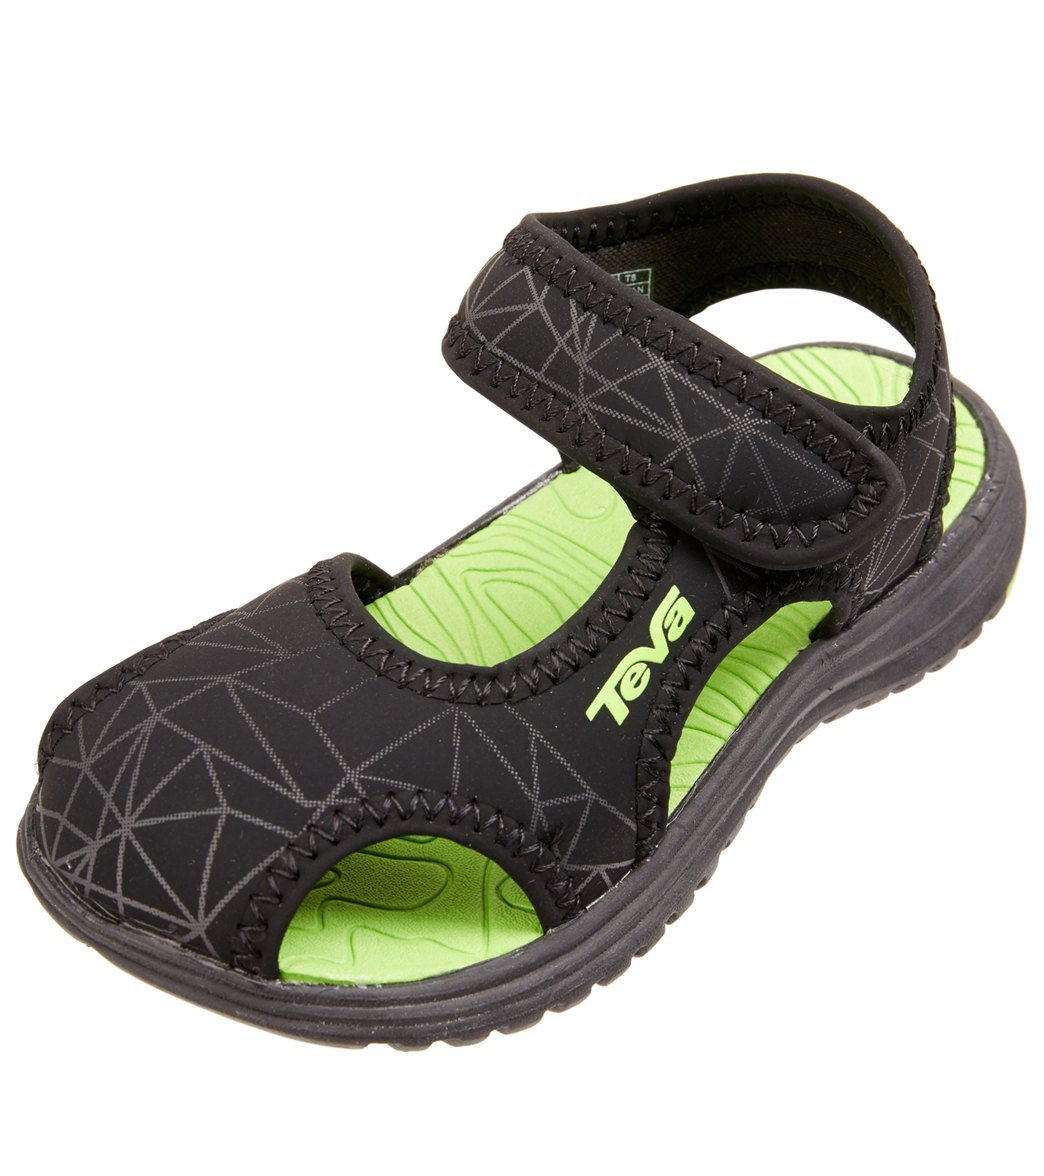 Teva Tidepool Toddler's Shoe Ct Water WorBxedC